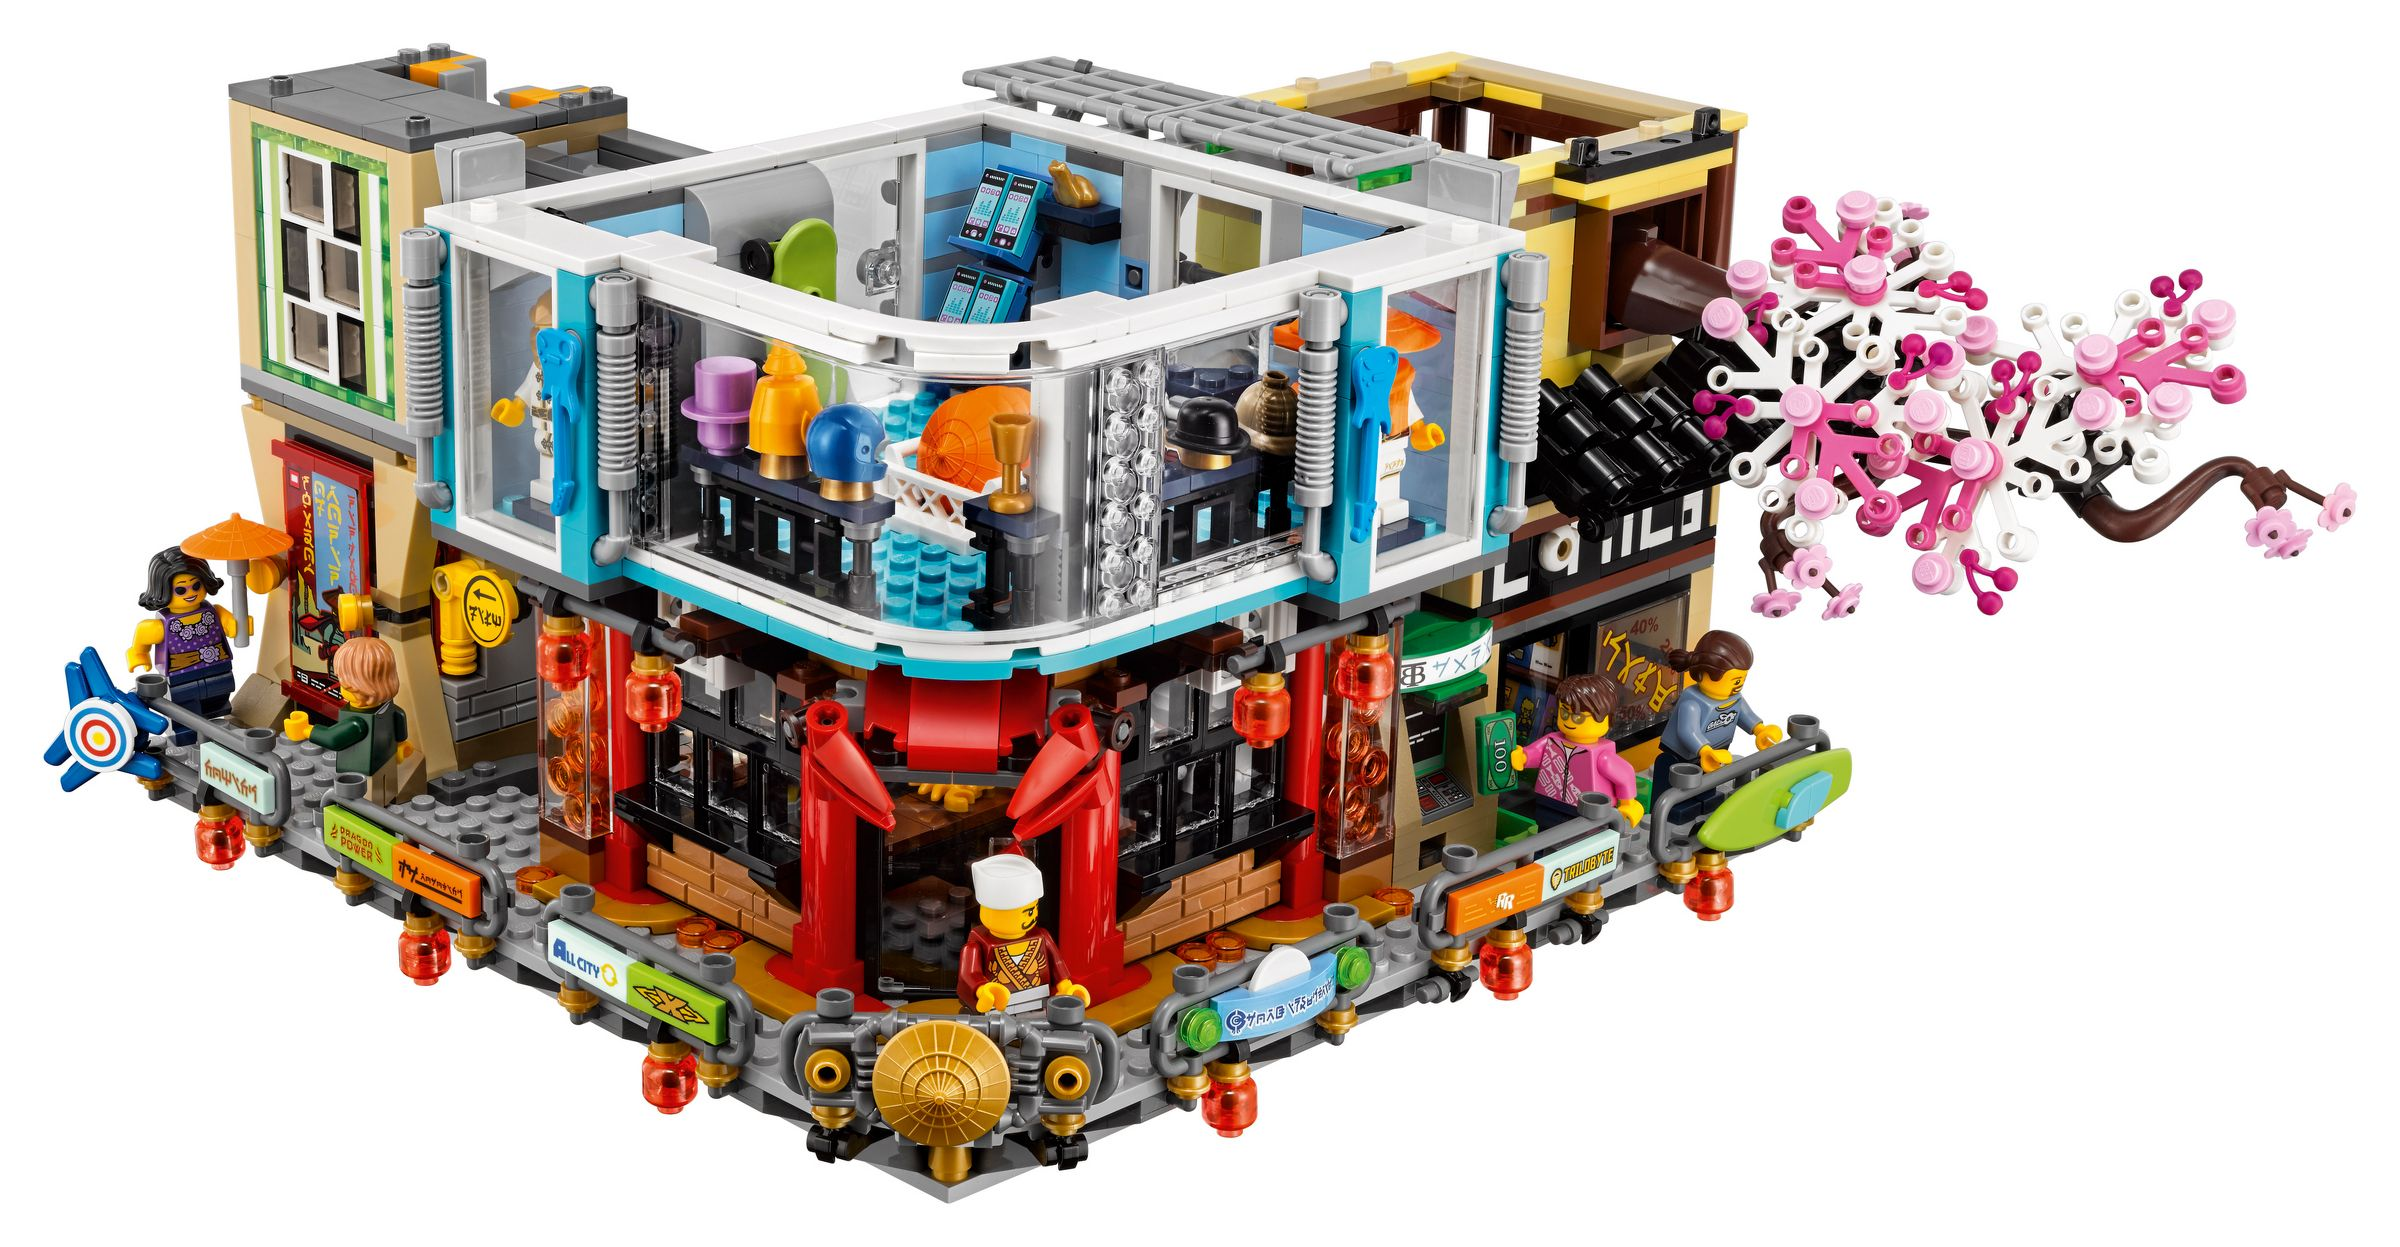 LEGO The LEGO Ninjago Movie 70620 Ninjago City LEGO_70620_alt4.jpg